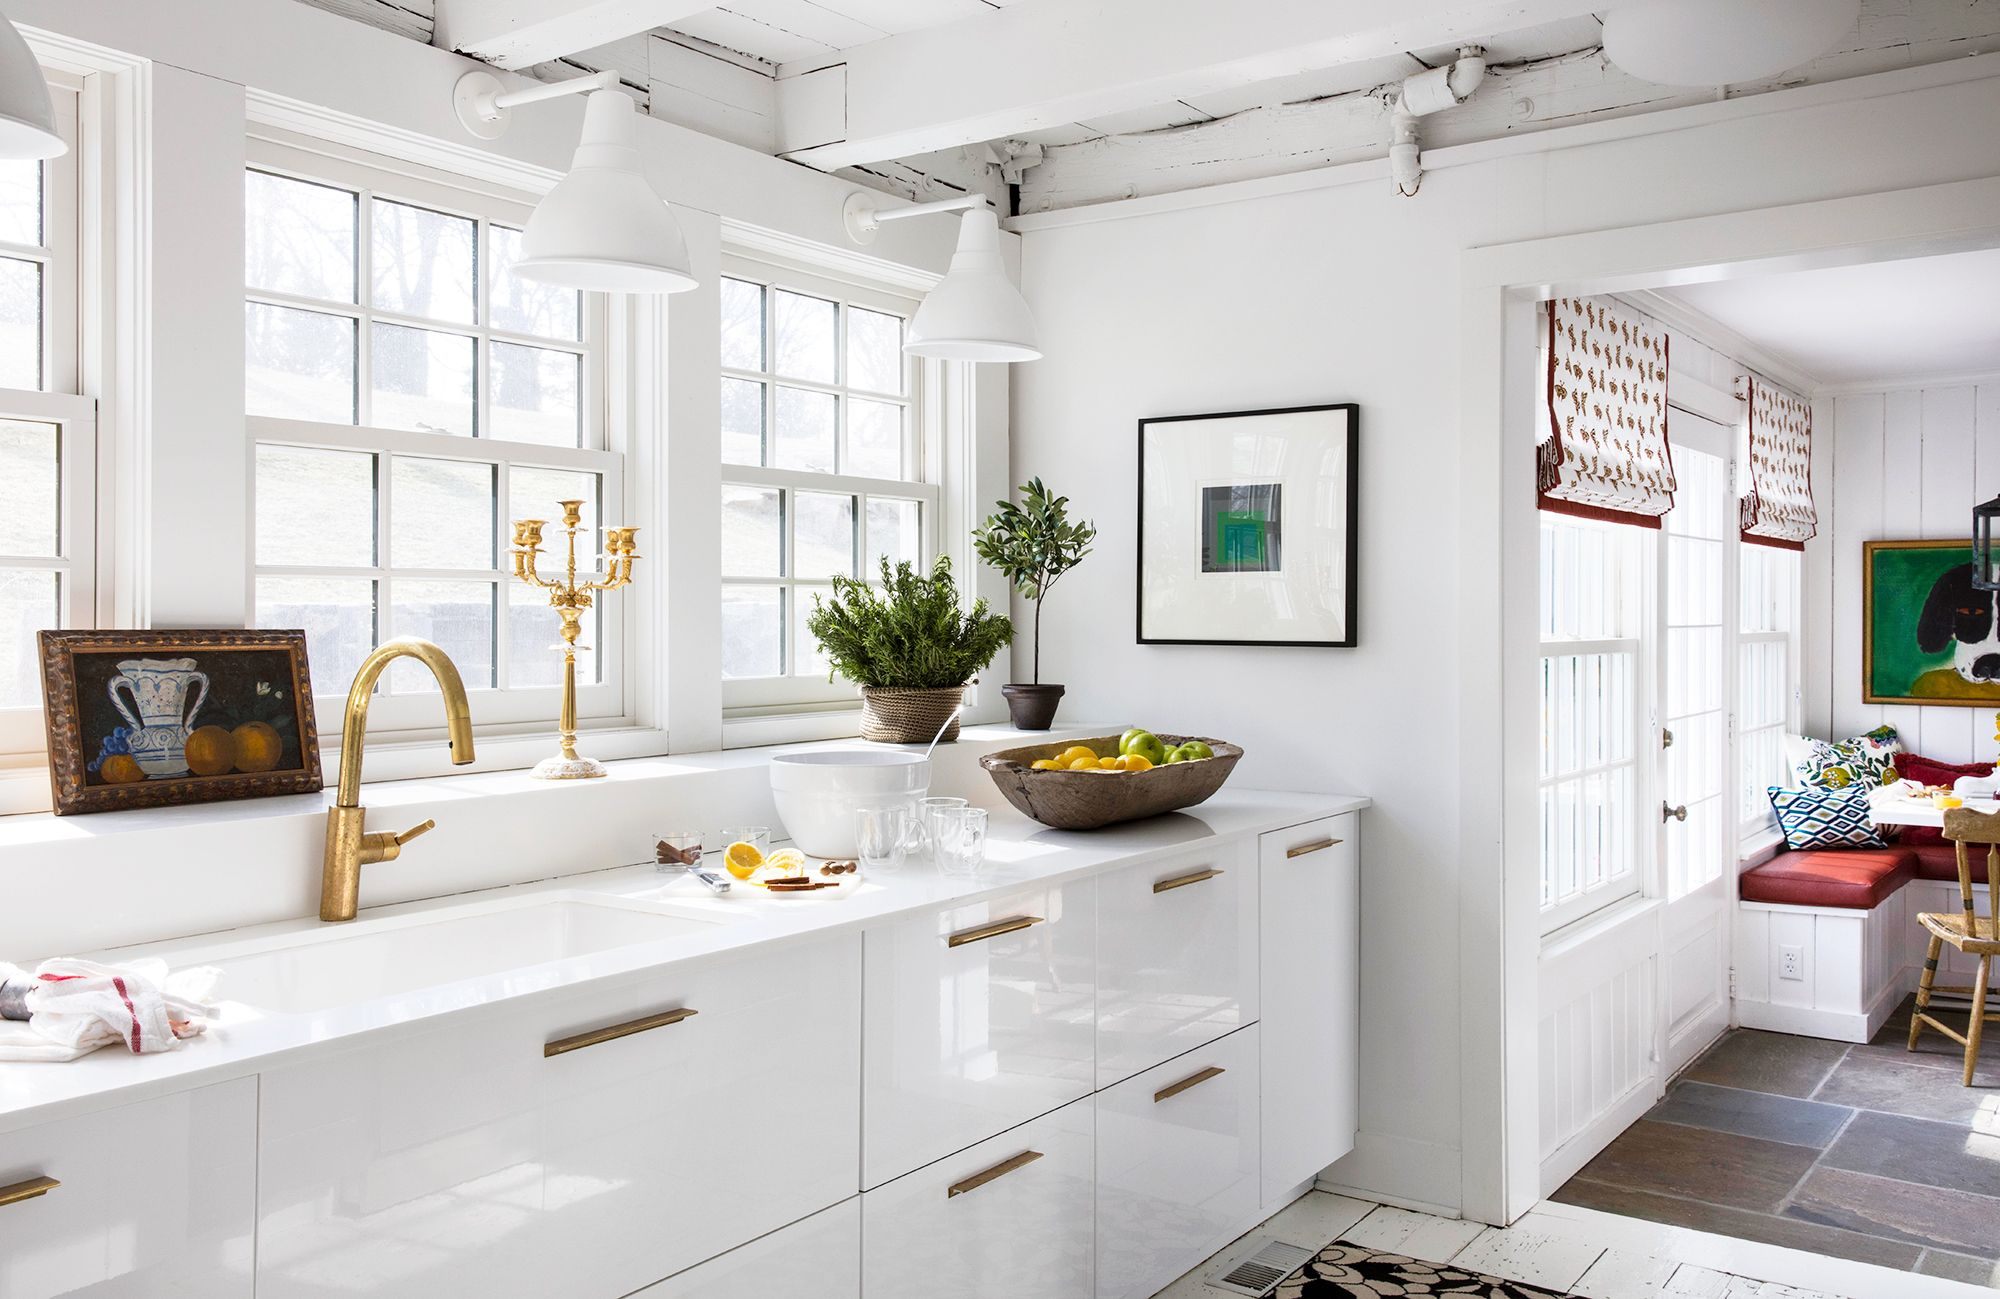 10 Modern White Kitchen Ideas To Look For In 2020